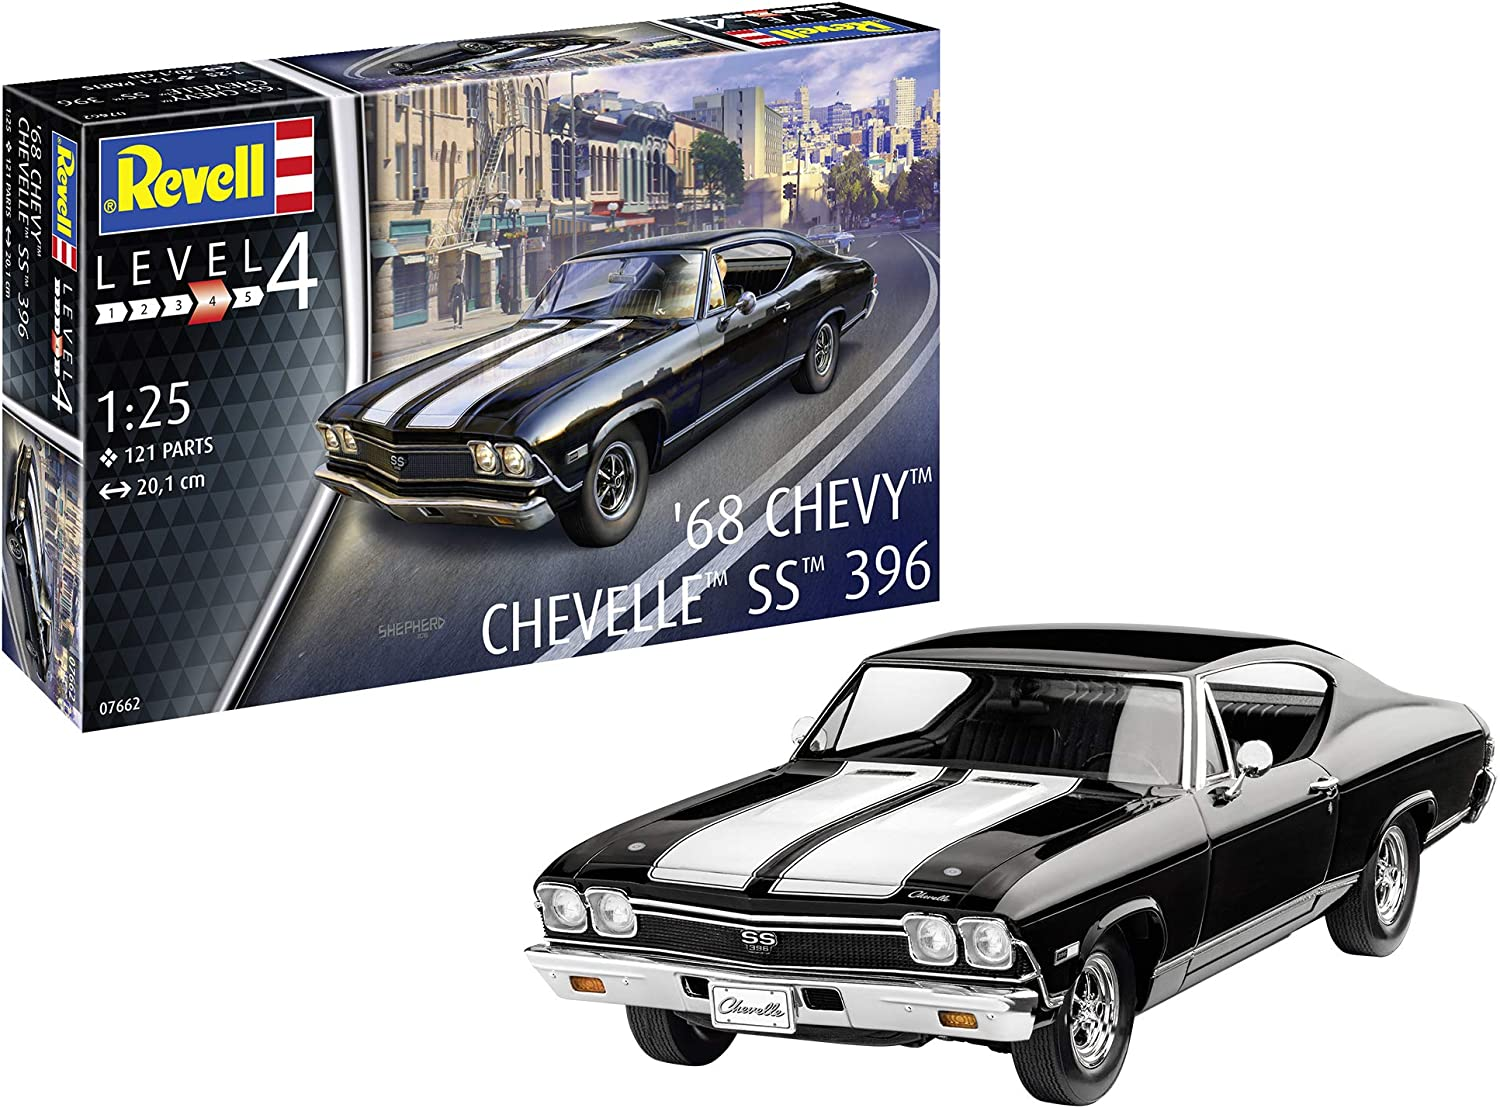 Revell GmbH Revell 07662 7662 1 25 1968 Chevy ChevellePLastic Model Kit, Multicolour, 1 25